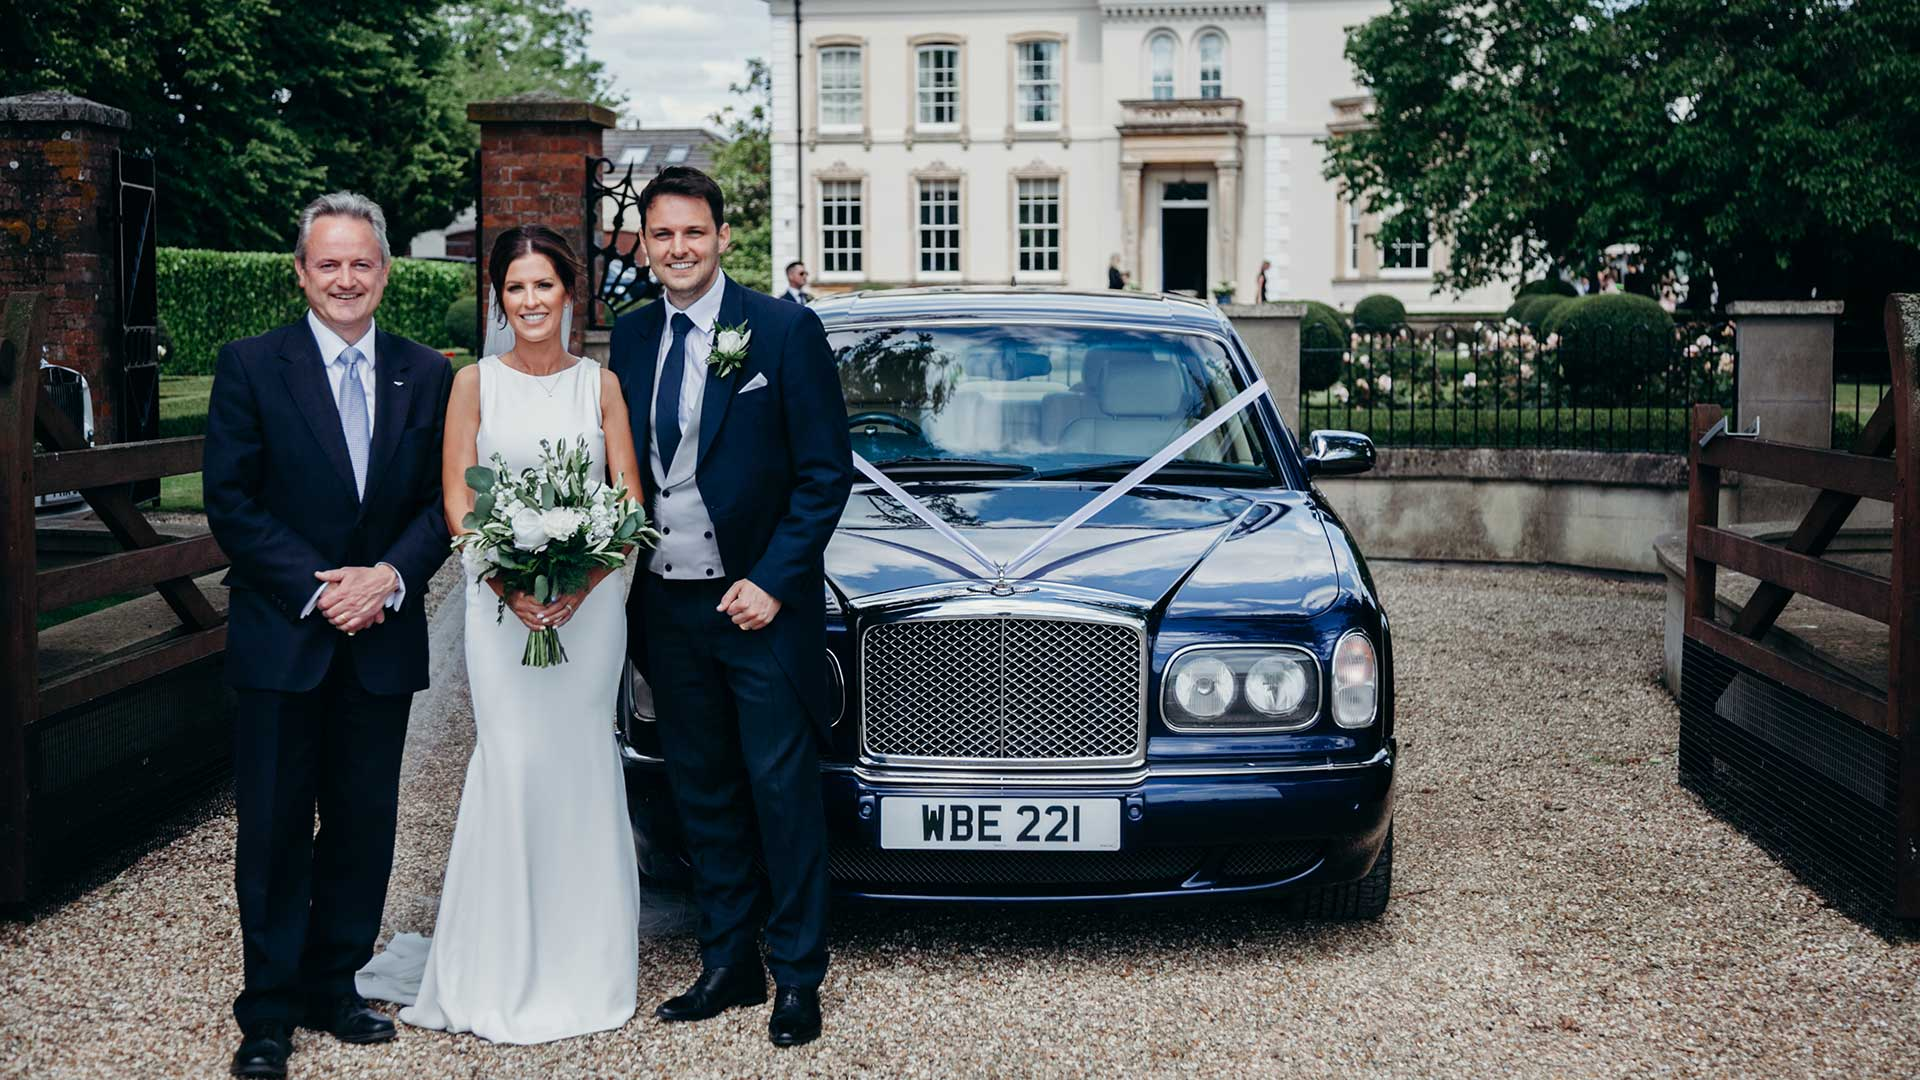 Rhys and Laura with David, owner of Azure Wedding Cars, with the Bentley Arnage in Blue